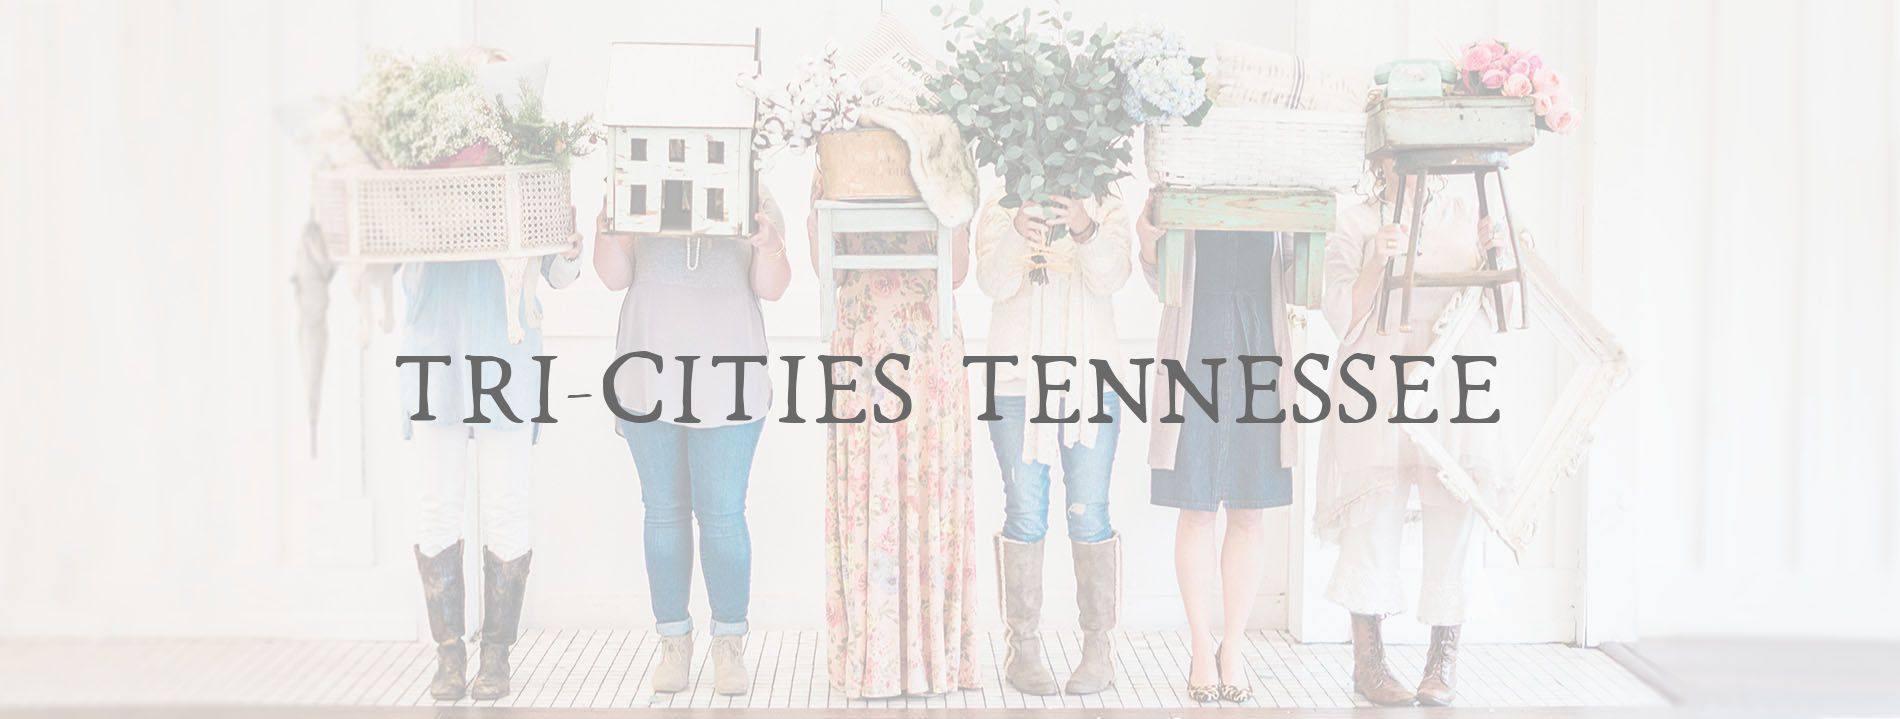 Tri-Cities Tennessee